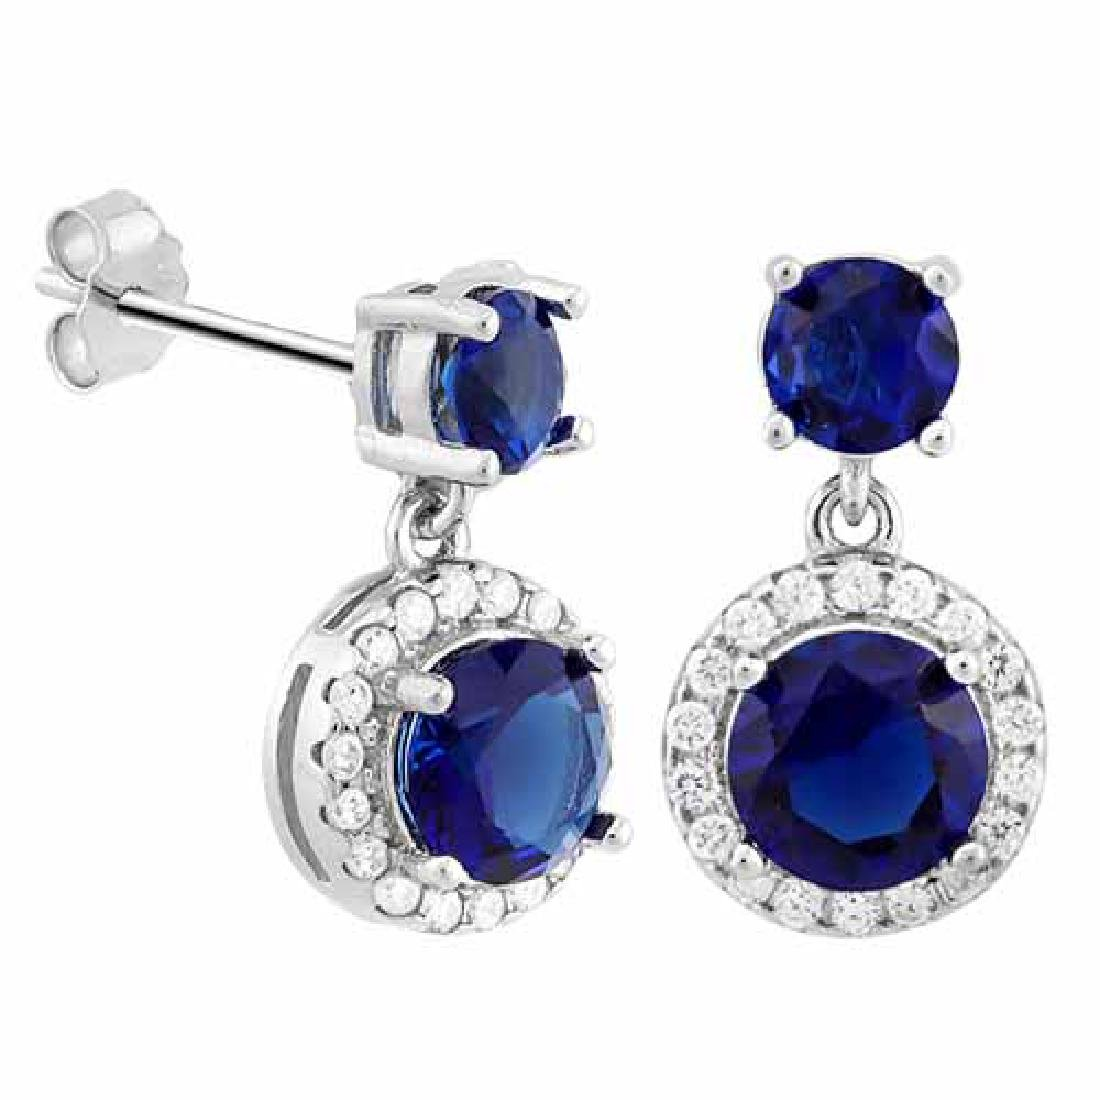 CREATED BLUE SAPPHIRE 925 STERLING SILVER EARRINGS